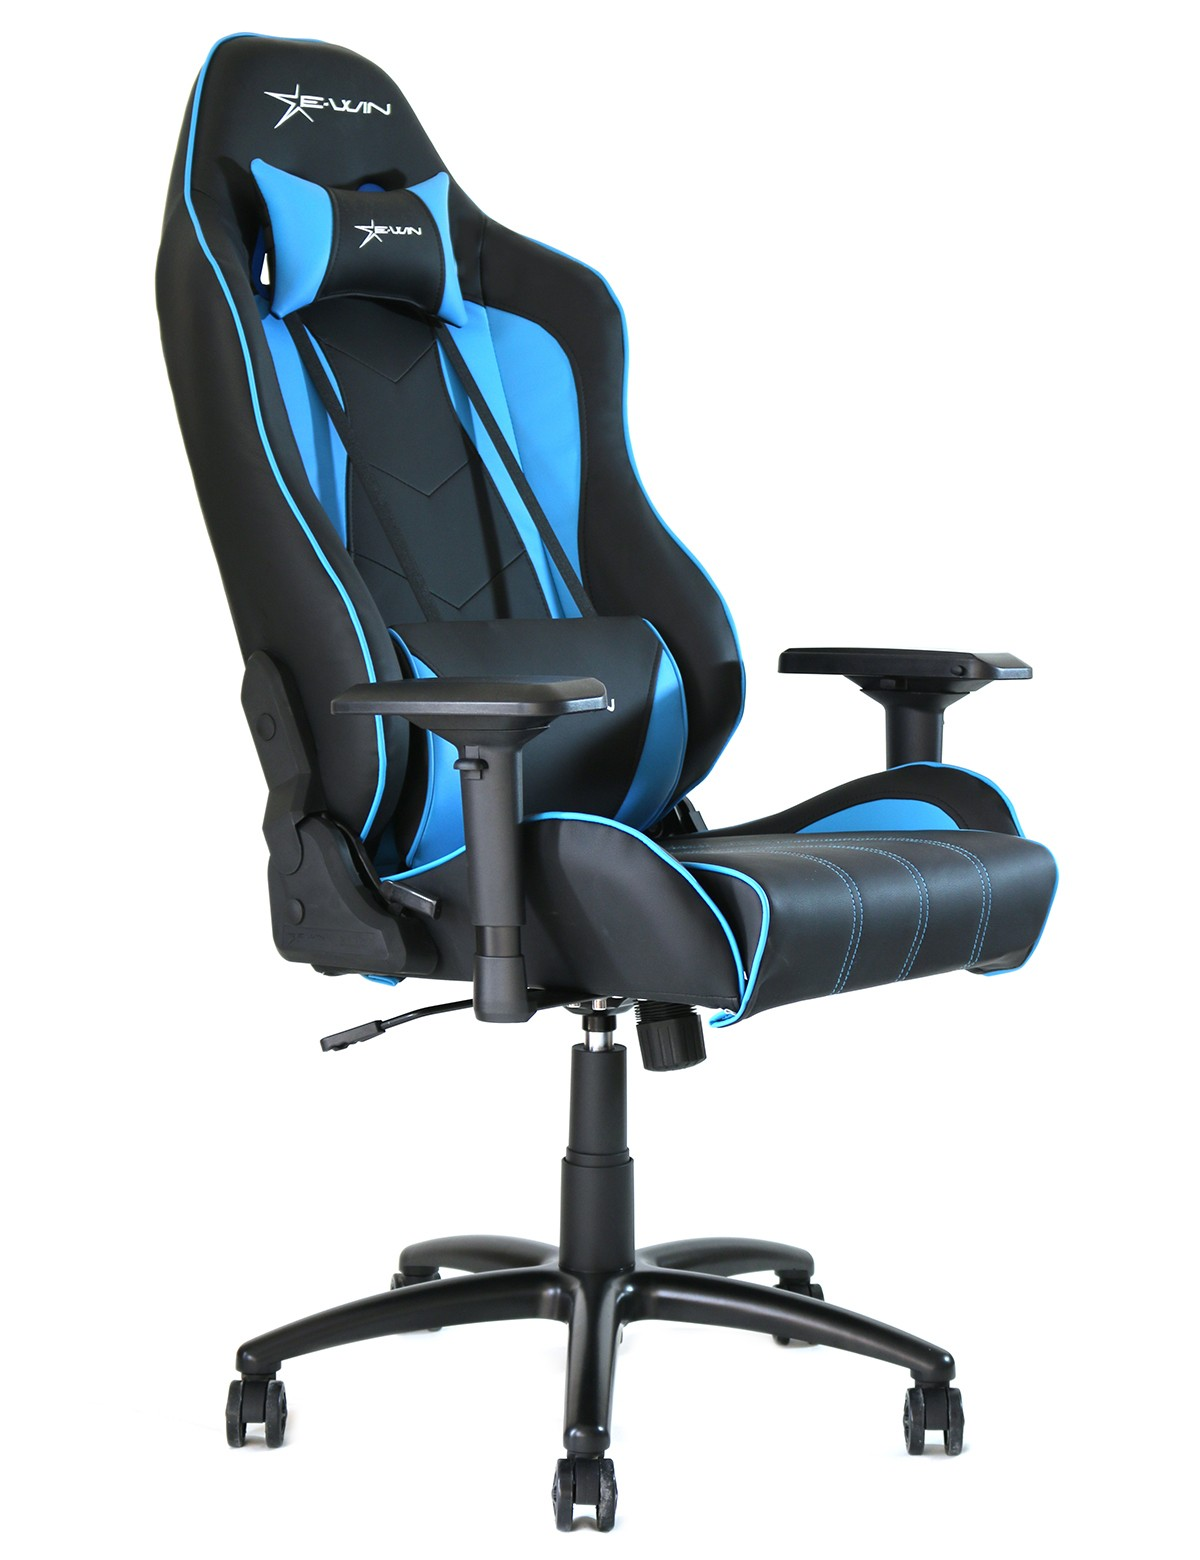 Gaiming Chair E Win Europe Champion Series Cpa Ergonomic Office Gaming